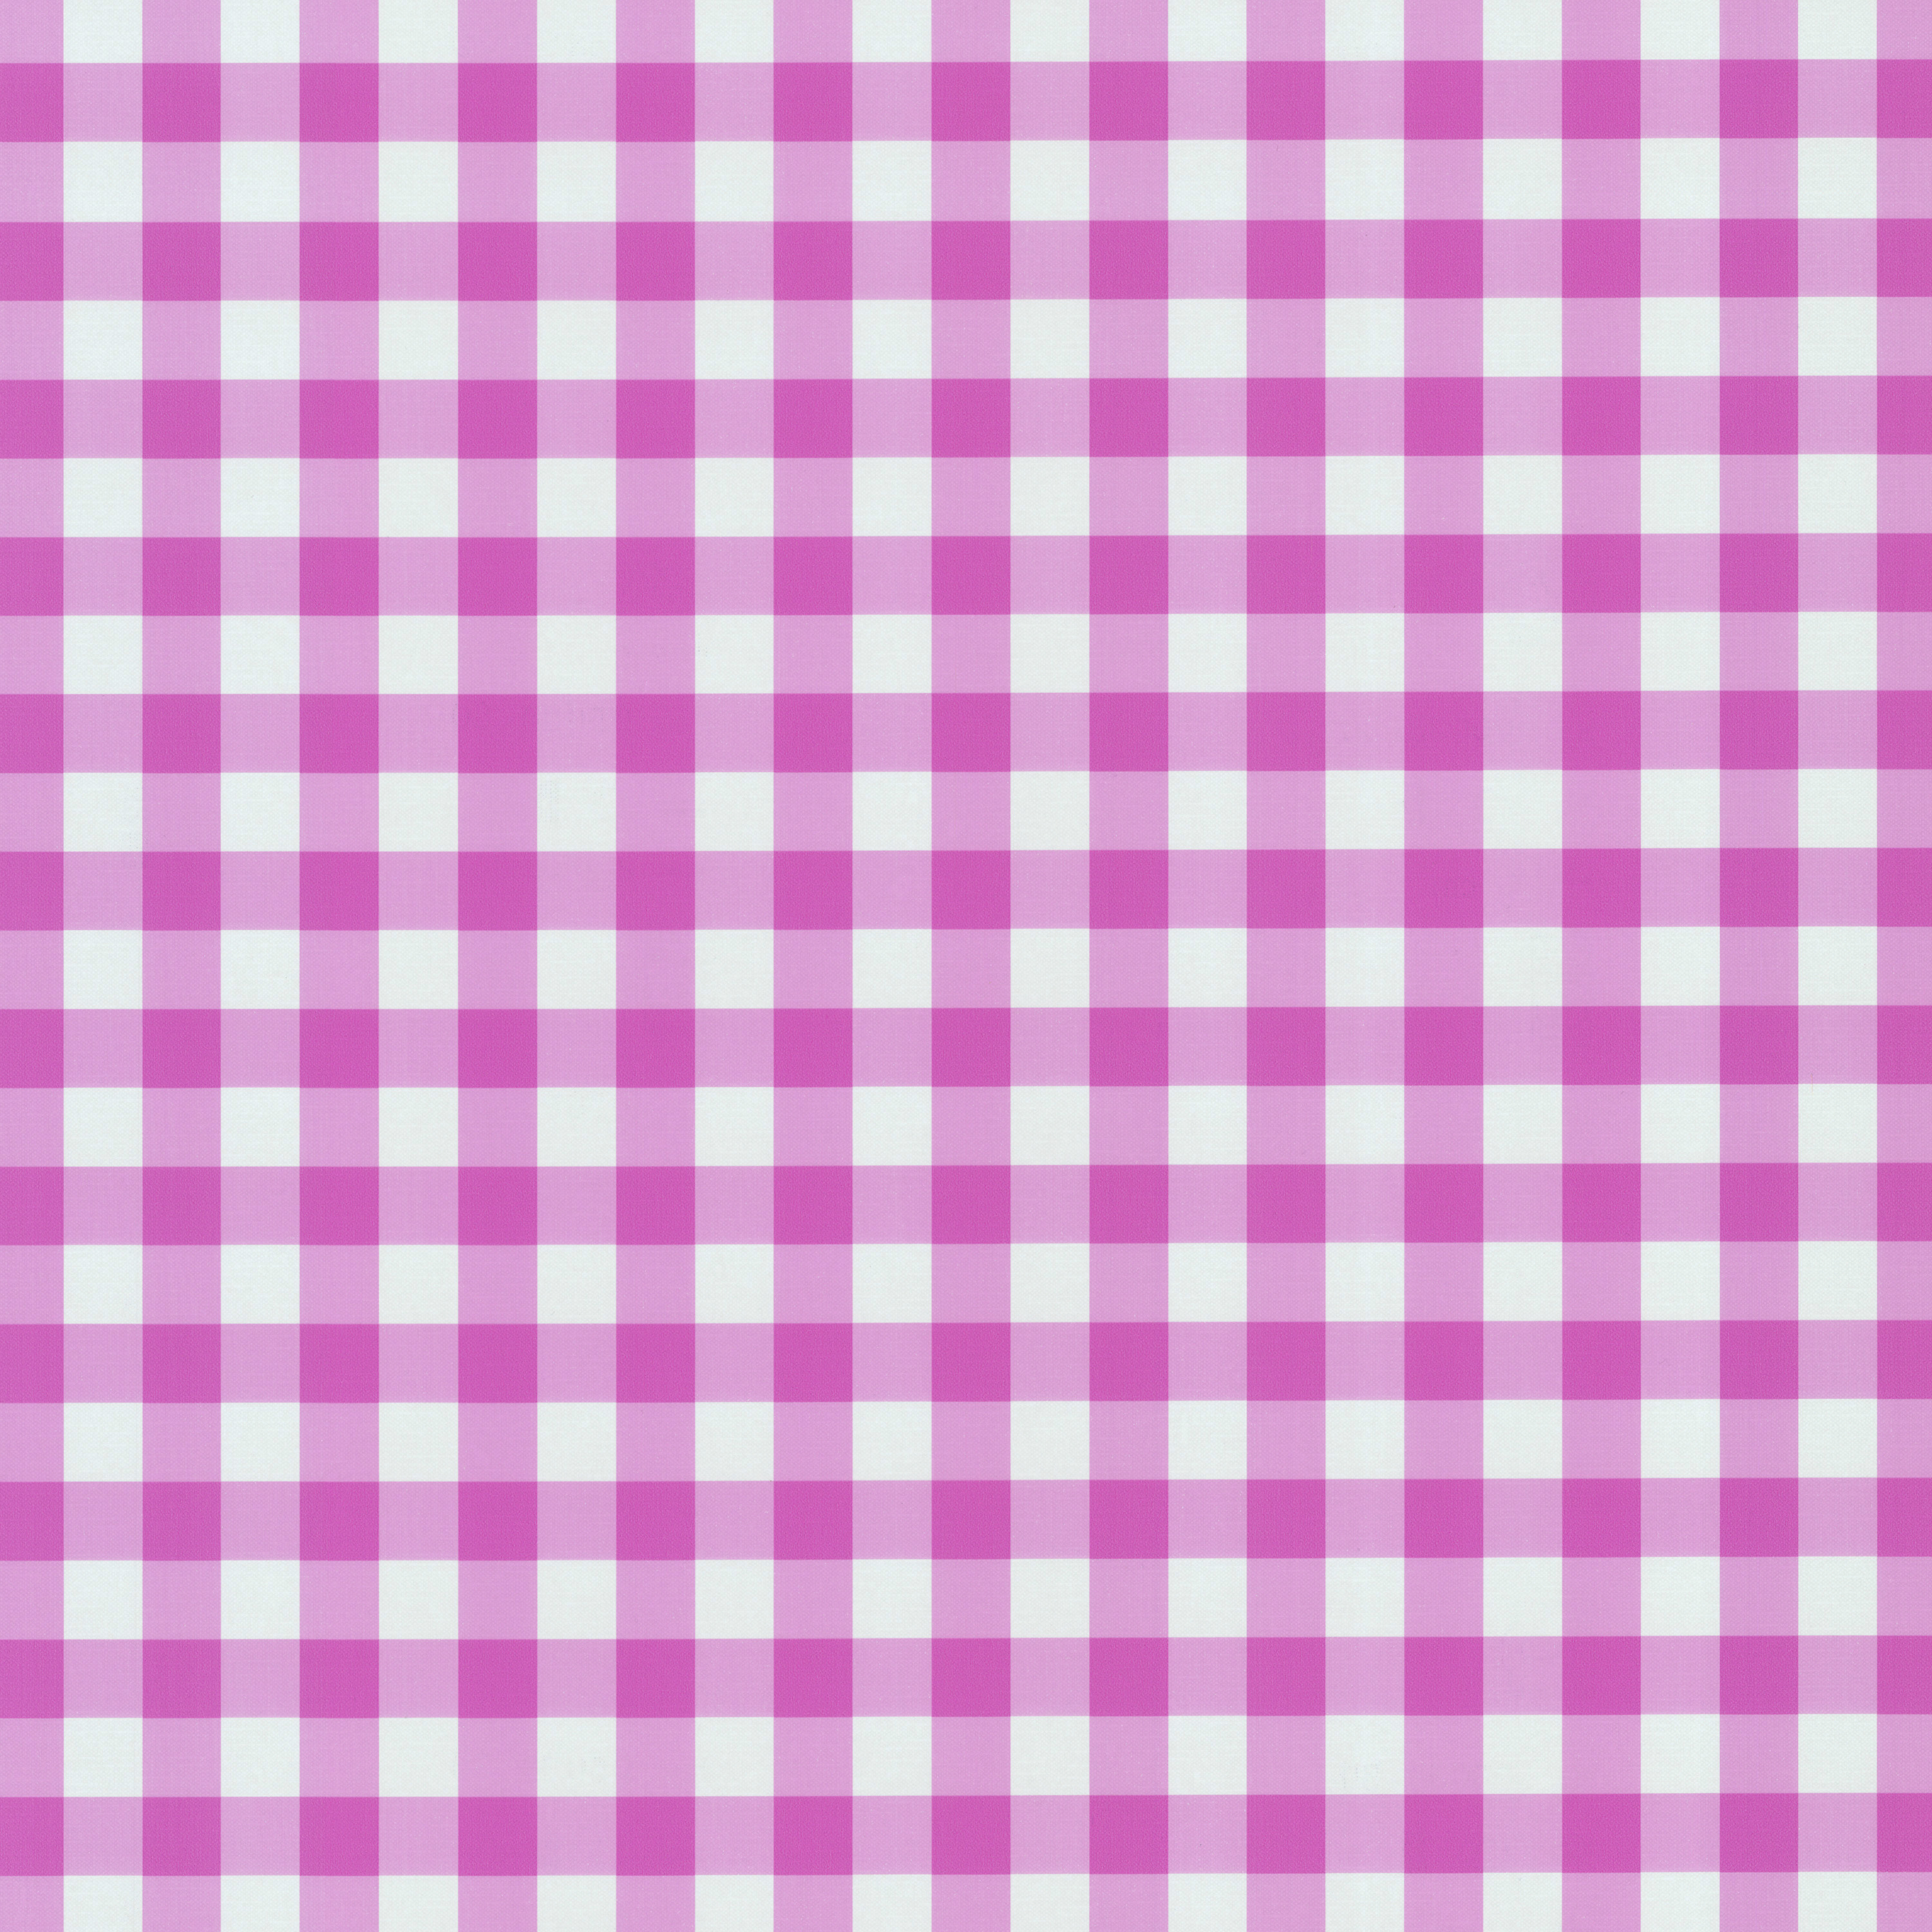 Bright Pink Gingham Check Wallpaper by PS International 05638 30 3000x3000